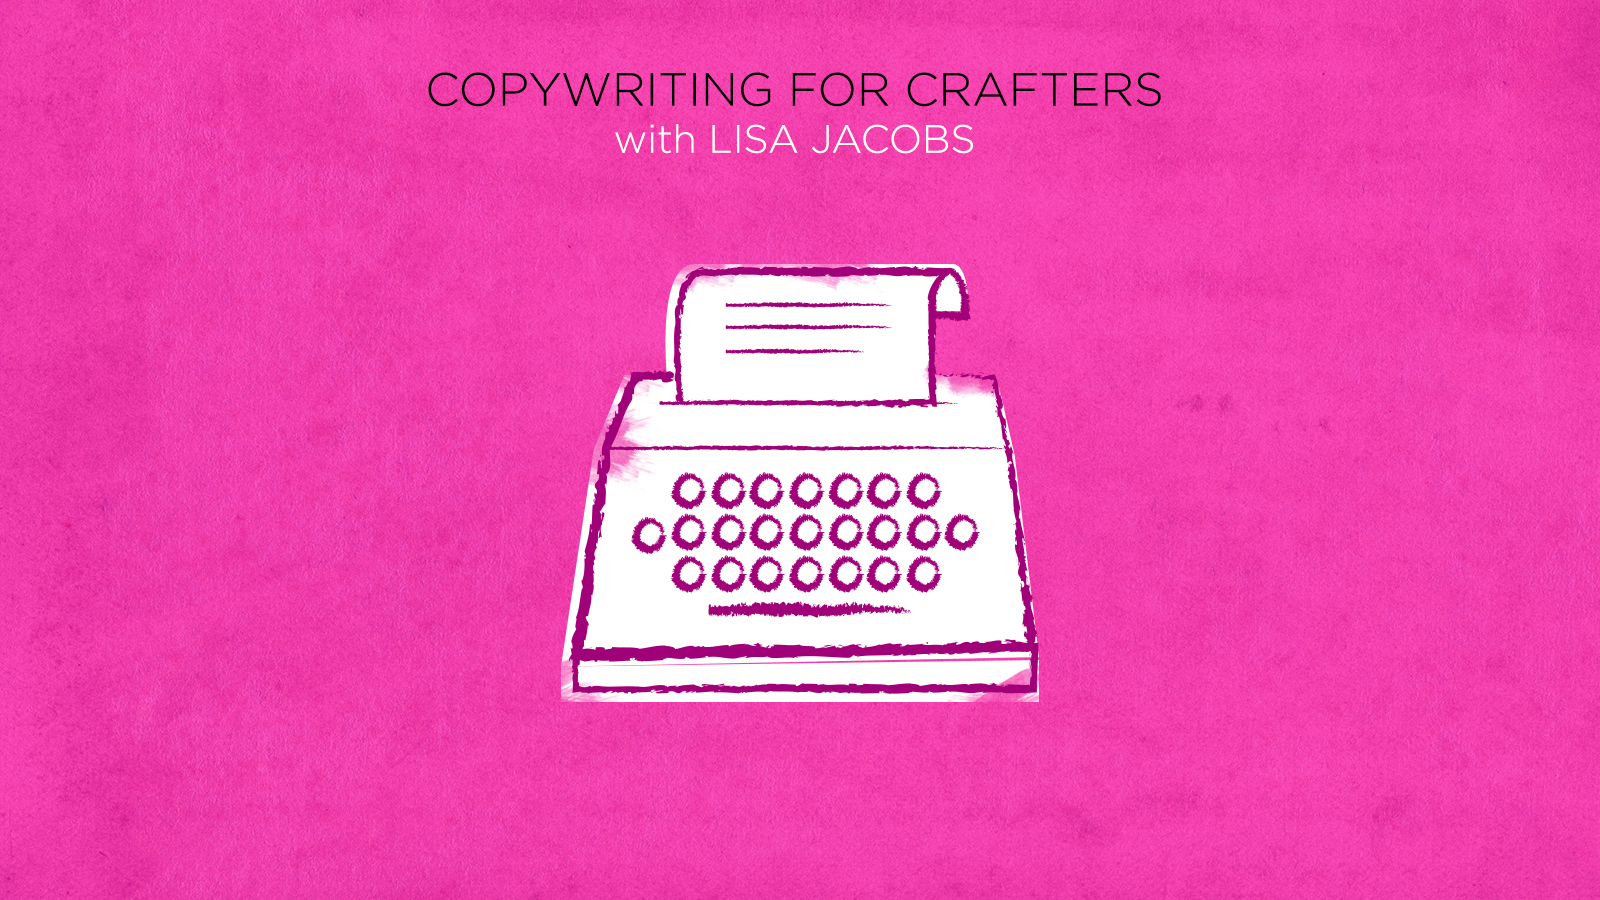 Don't let writing intimidate you! Take Copywriting for Crafters and find out how to authentically and easily speak to your audience.